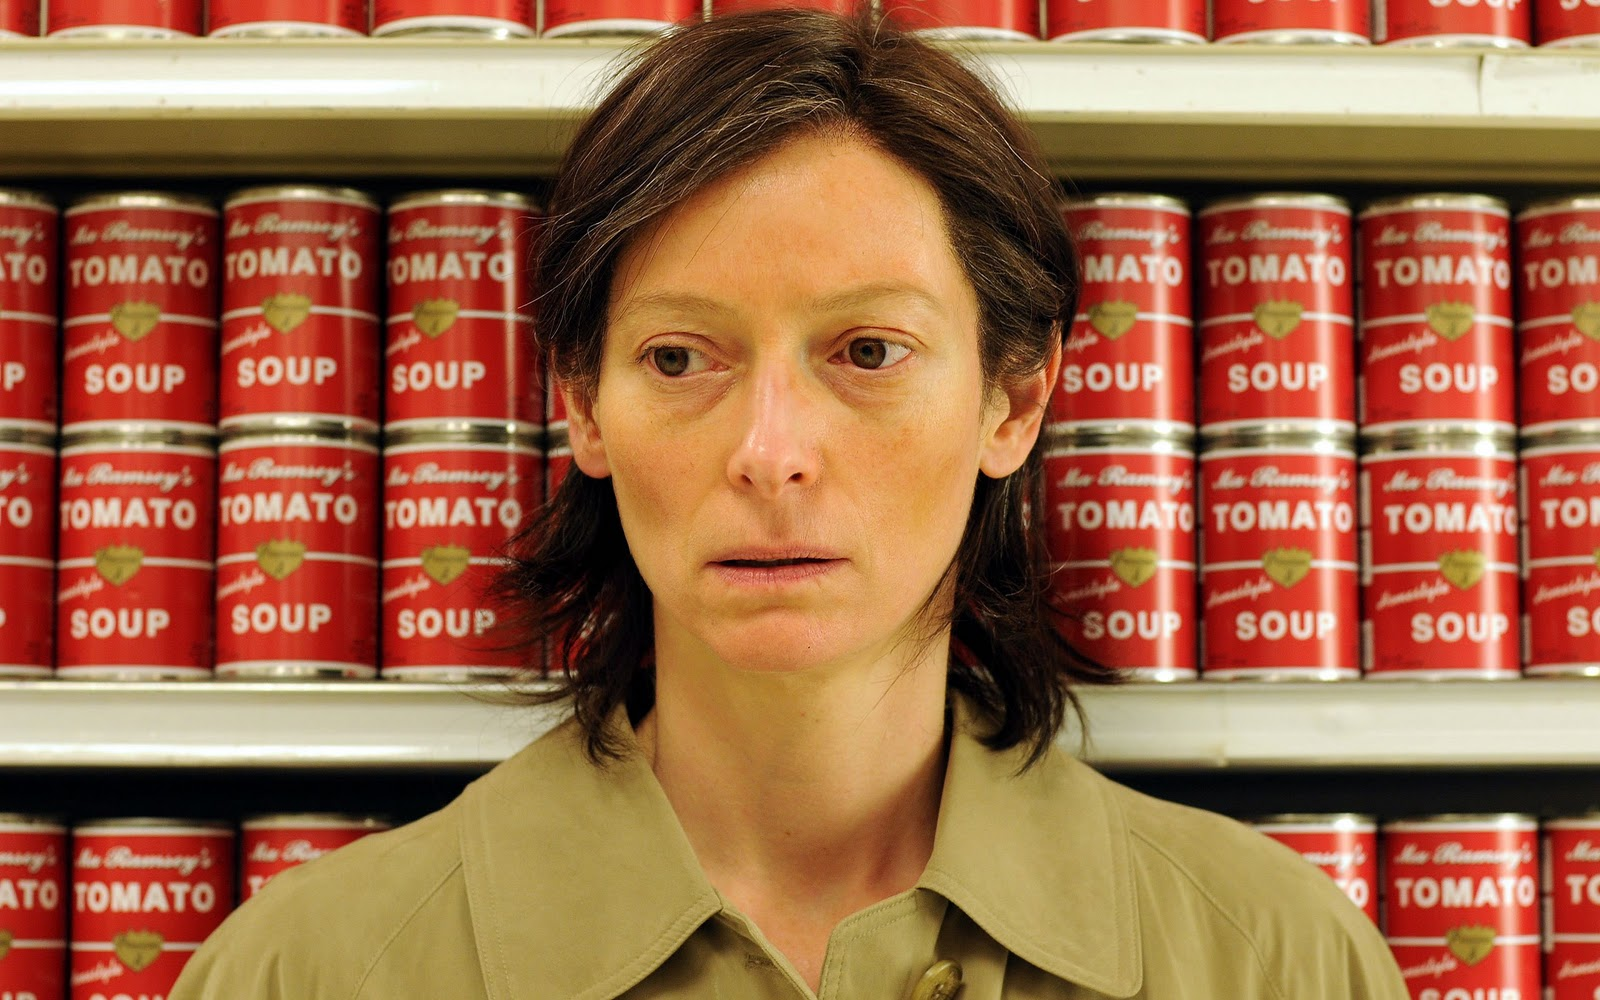 we-need-to-talk-about-kevin-tilda-swinton-tomato-soup-supermarket